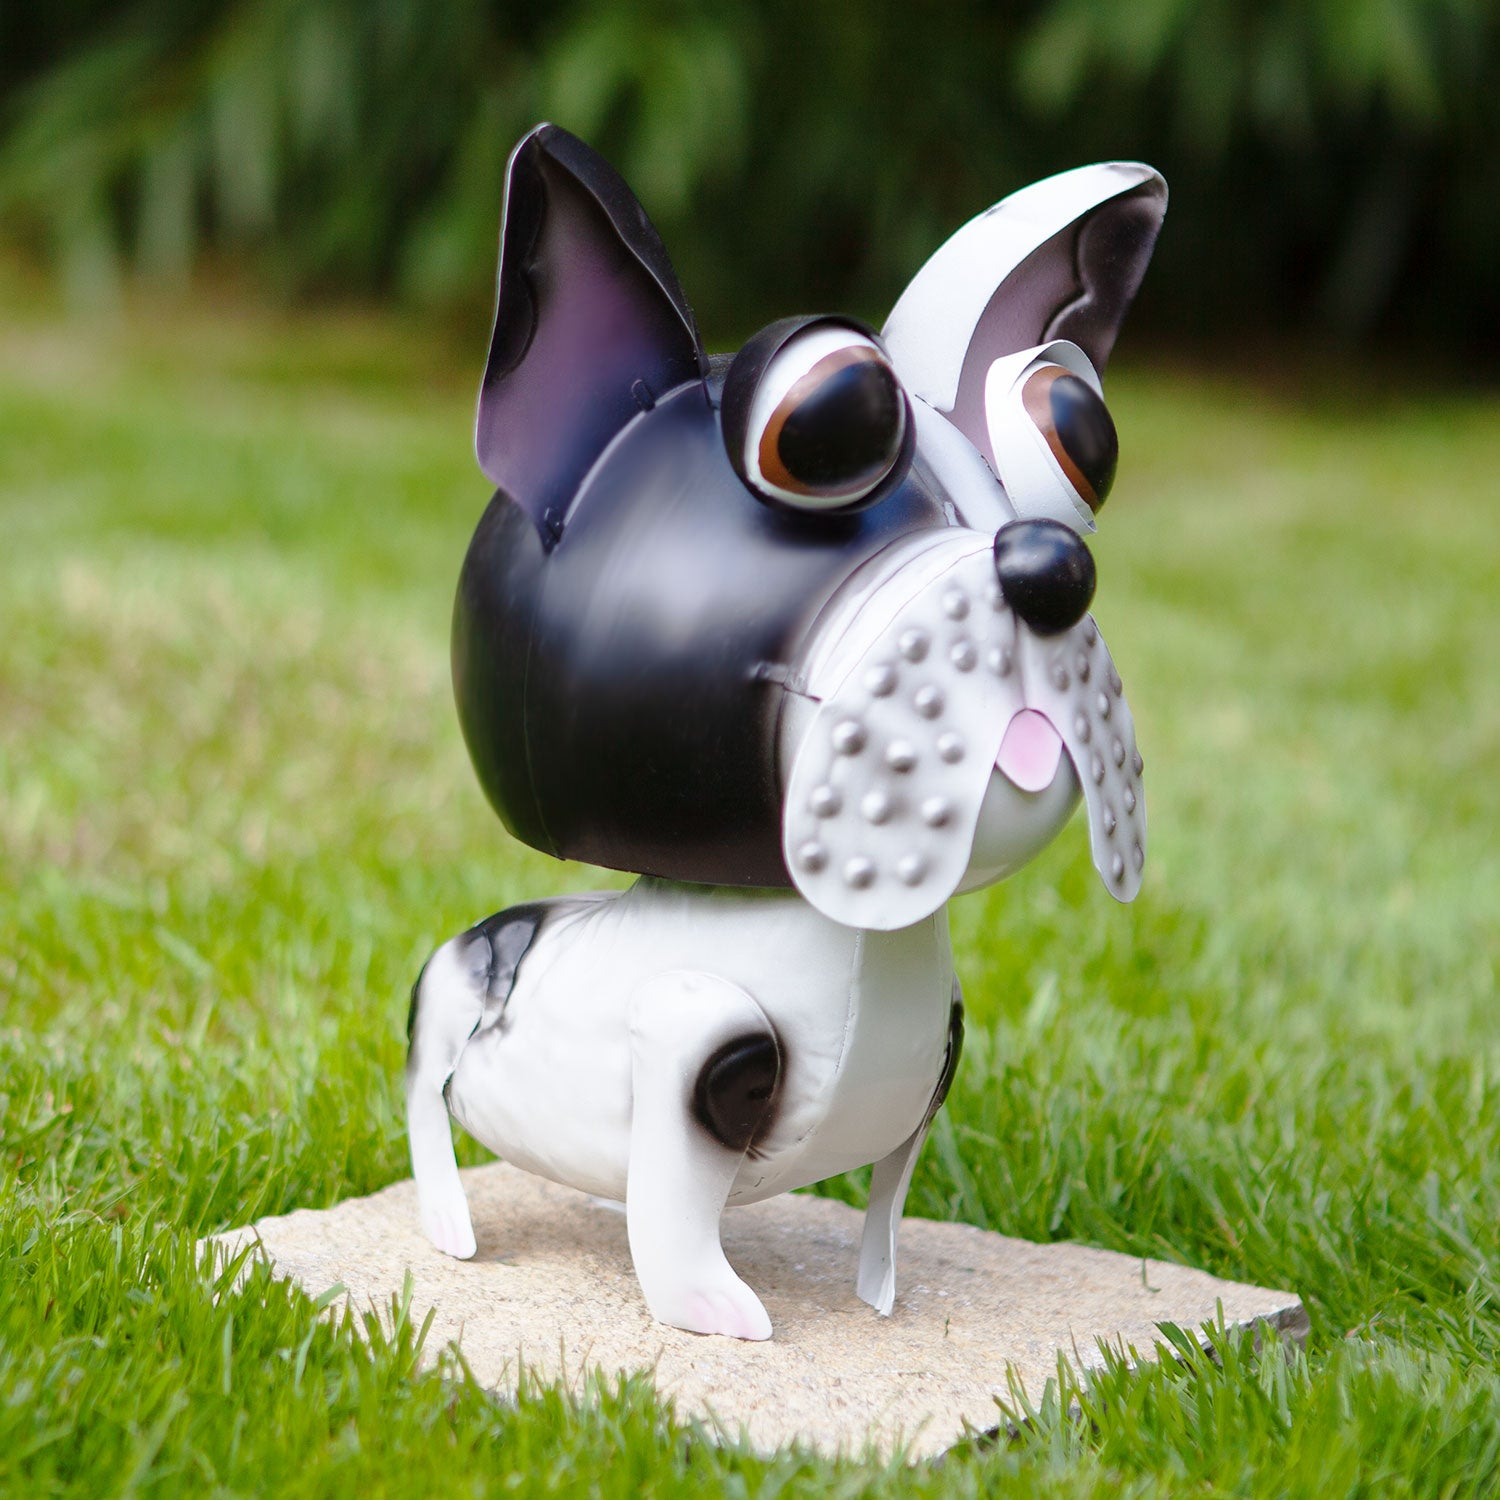 Dog Lover Gifts available at Dog Krazy Gifts – Bobble Buddies French Bulldog, available at www.dogkrazygifts.co.uk